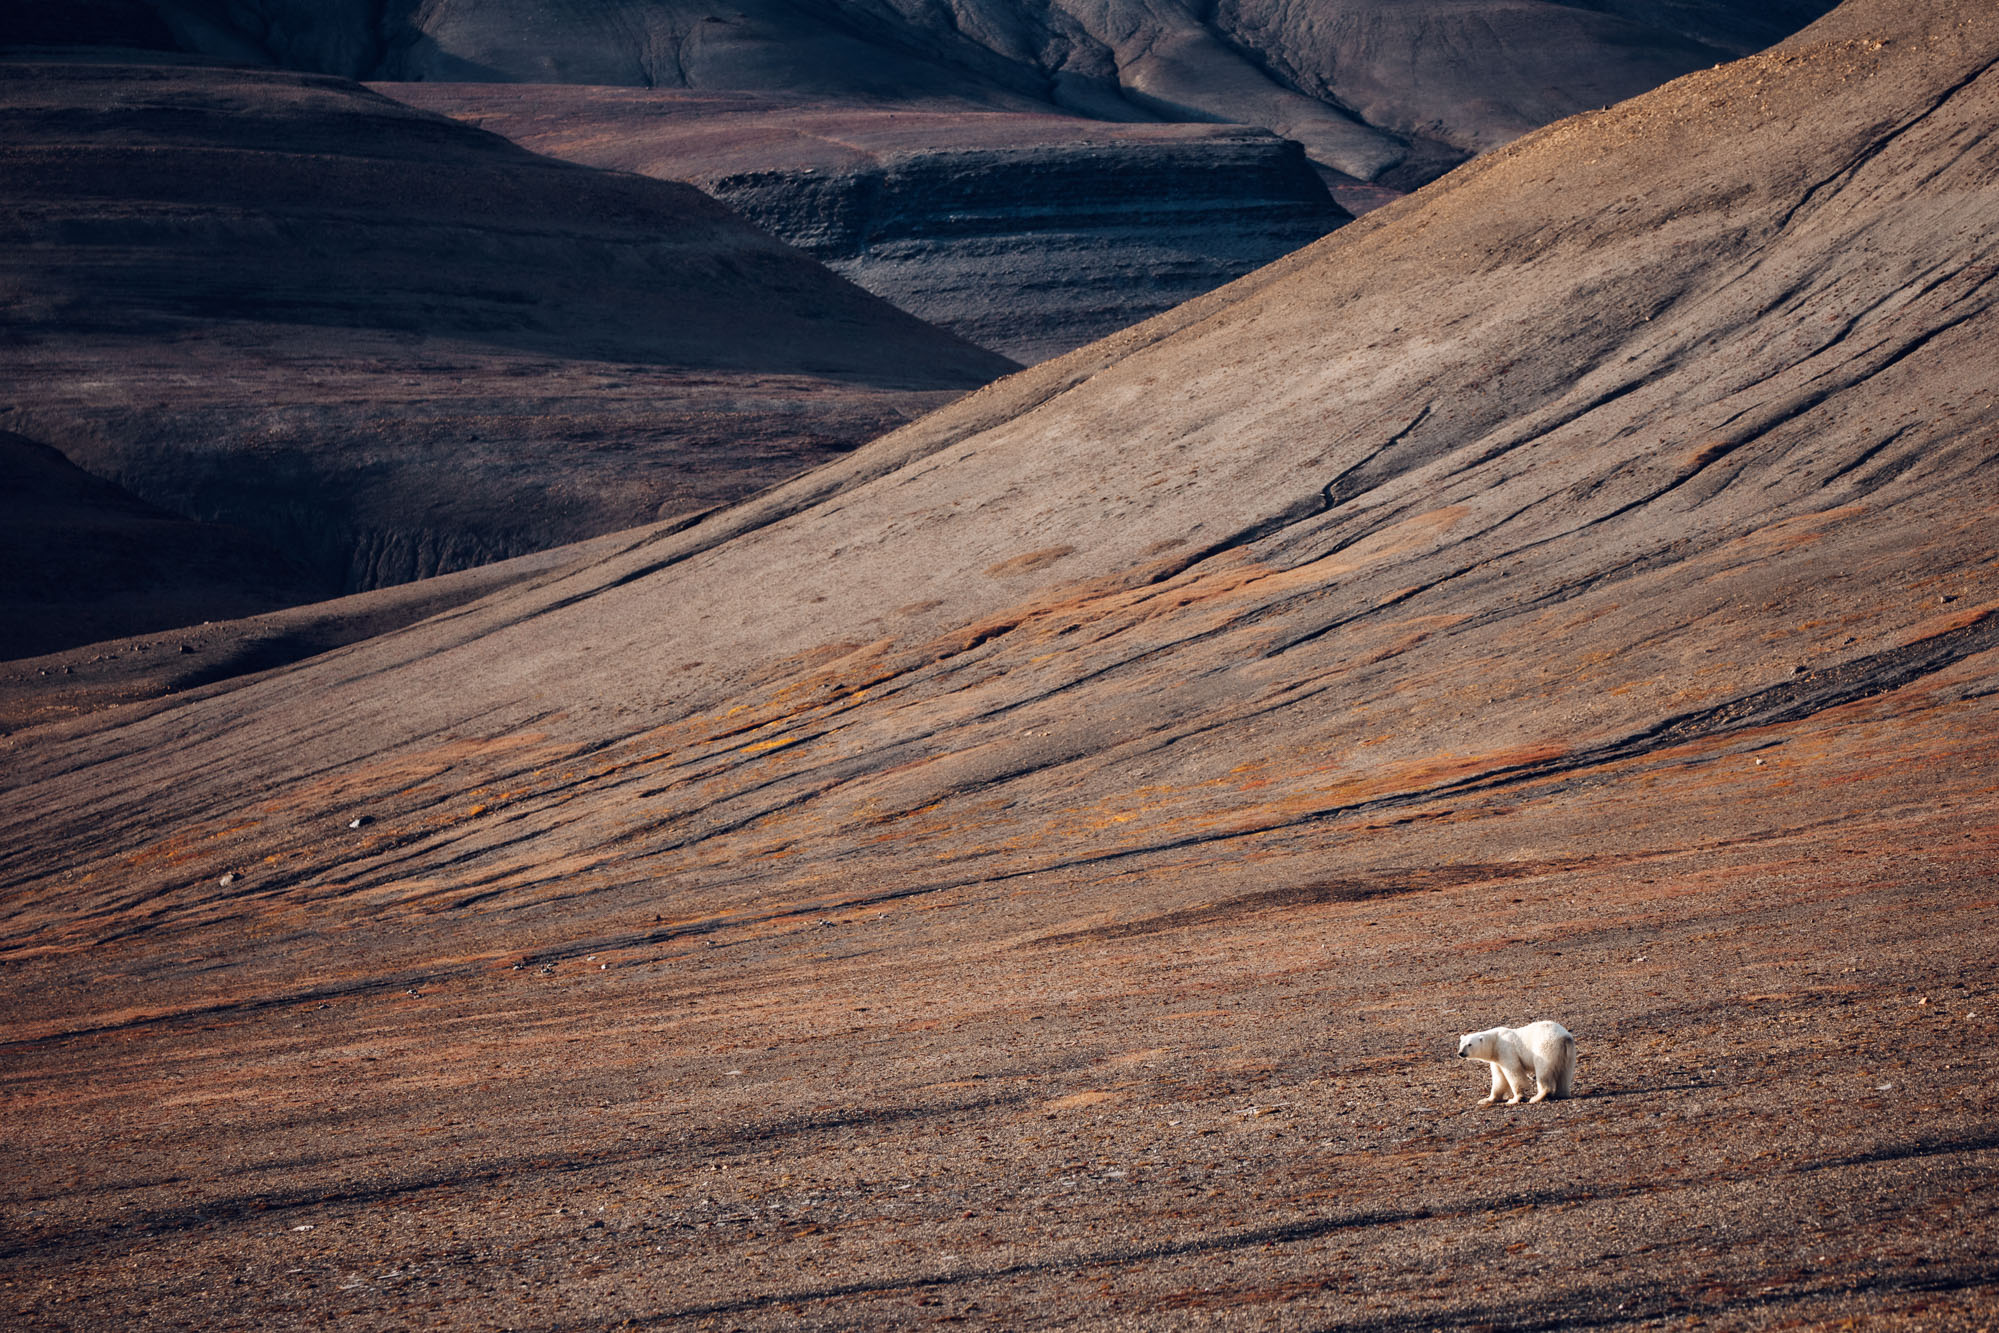 Polar bear in the mountains of Spitsbergen, Svalbard, Norway